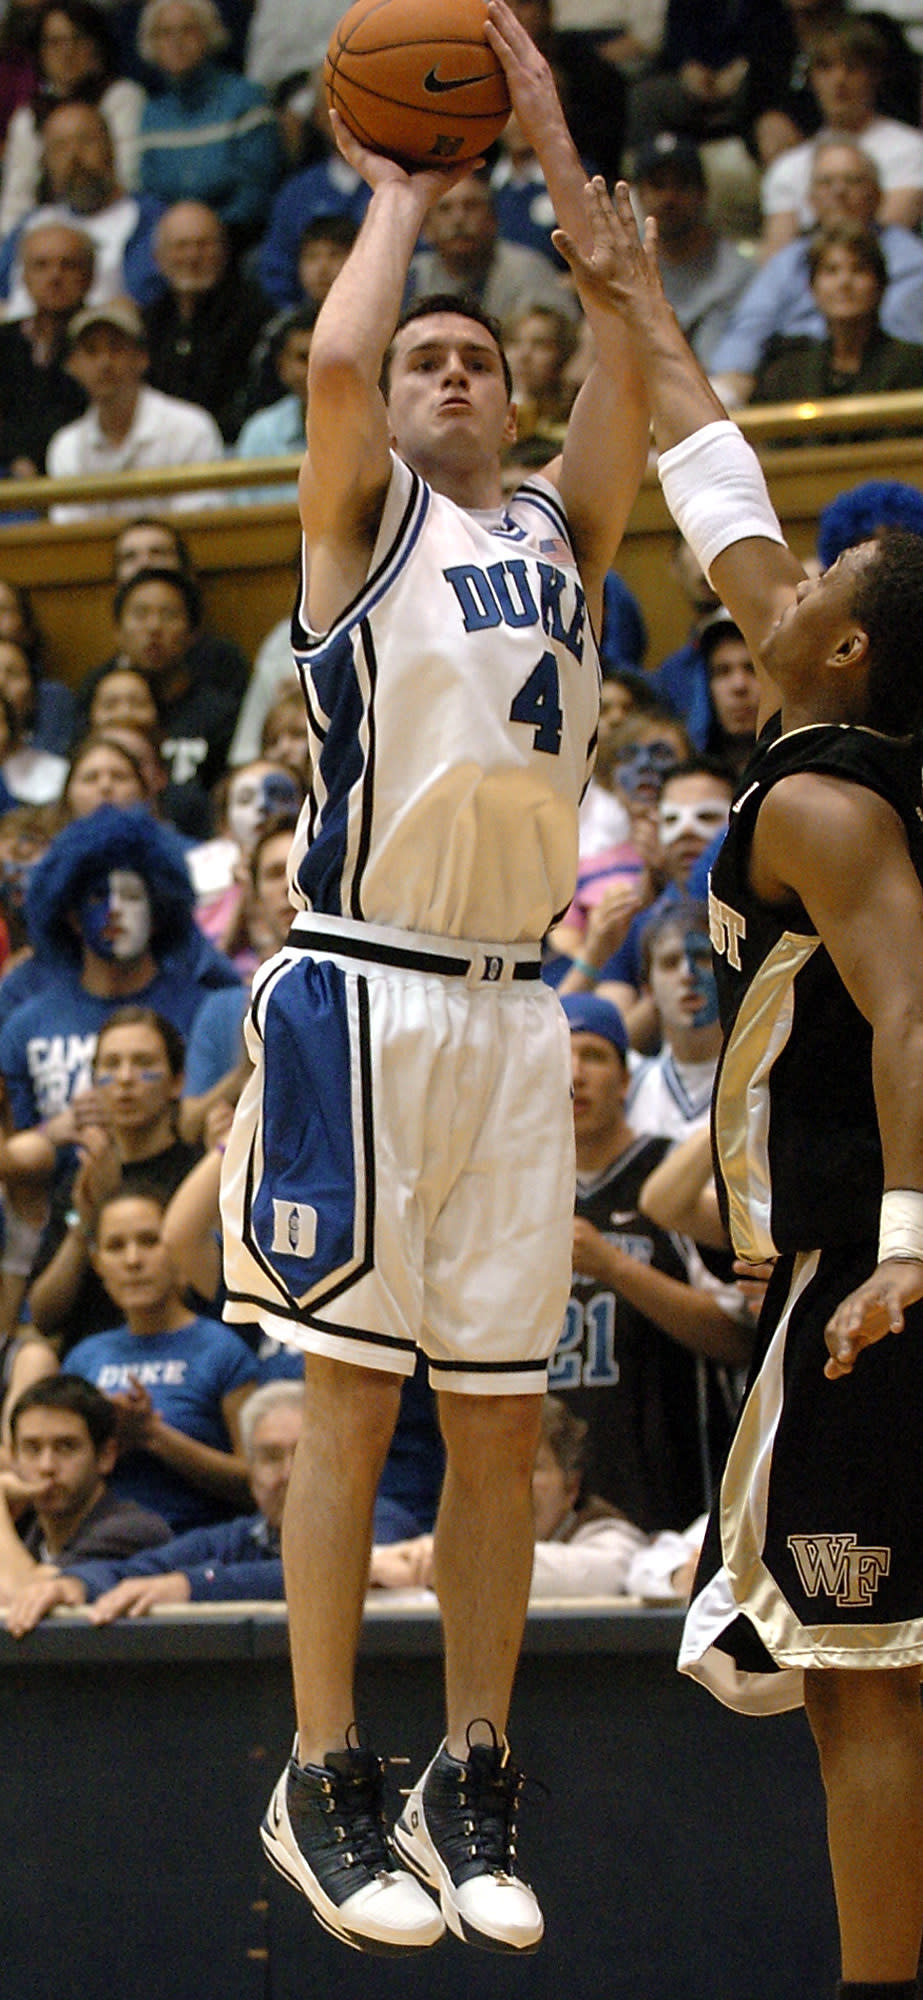 FILE - Duke's J.J. Redick (4) breaks the NCAA record for career high three-pointers made with 414 as he shoots over Wake Forest's Justin Gray, right, in the first half of a college basketball game in Durham, N.C., in this Tuesday, Feb. 14, 2006, file photo. Redick announced his retirement from basketball Tuesday, Sept. 21, 2021, ending a 15-season NBA career that came after he was the APs college player of the year at Duke in 2006. (AP Photo/Sara D. Davis, File)